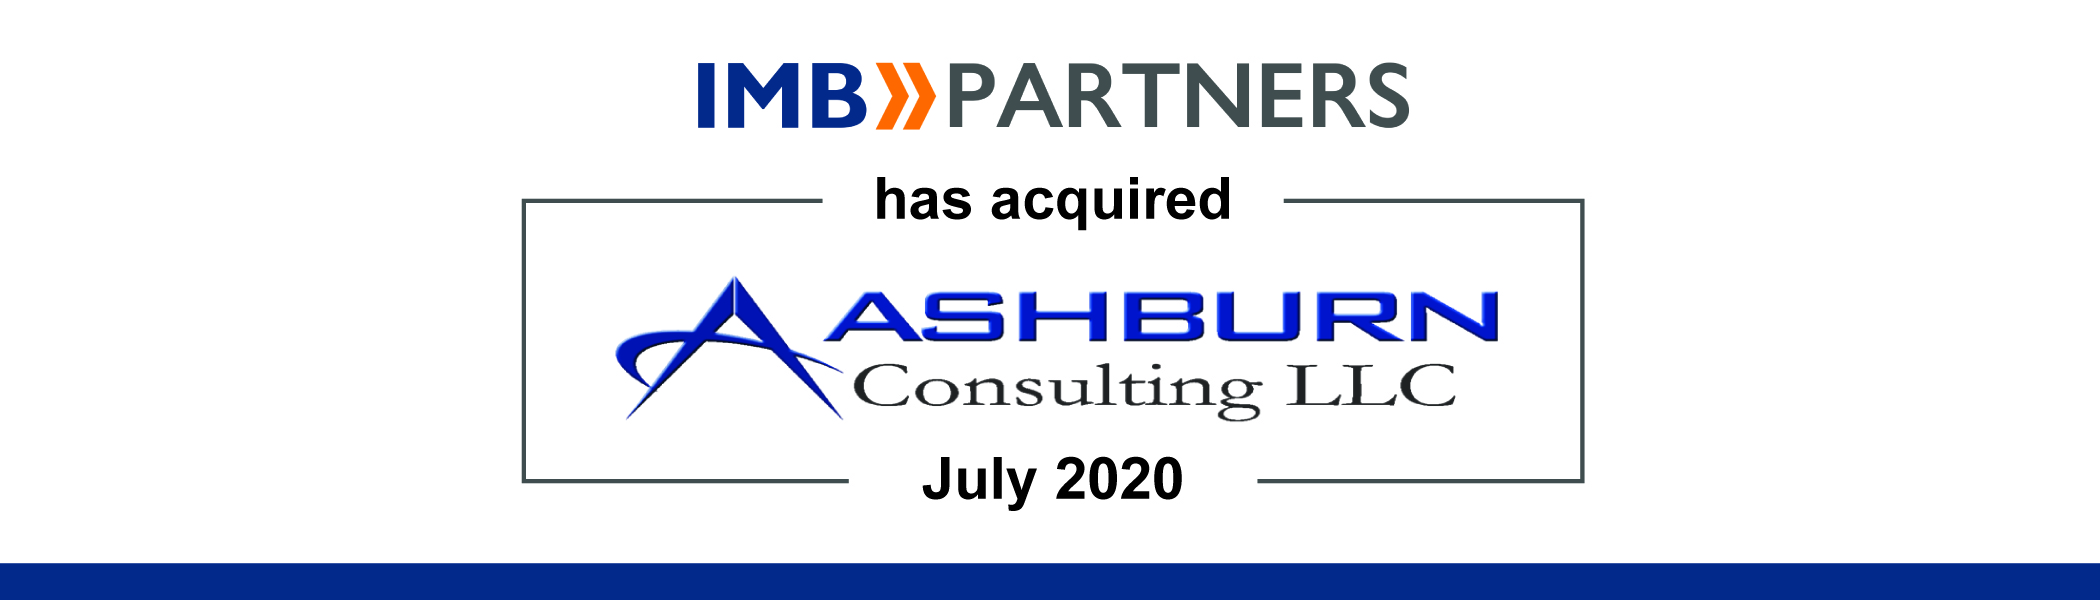 IMB Partners Acquires Ashburn Consulting, Expanding Its Presence in Government IT Services